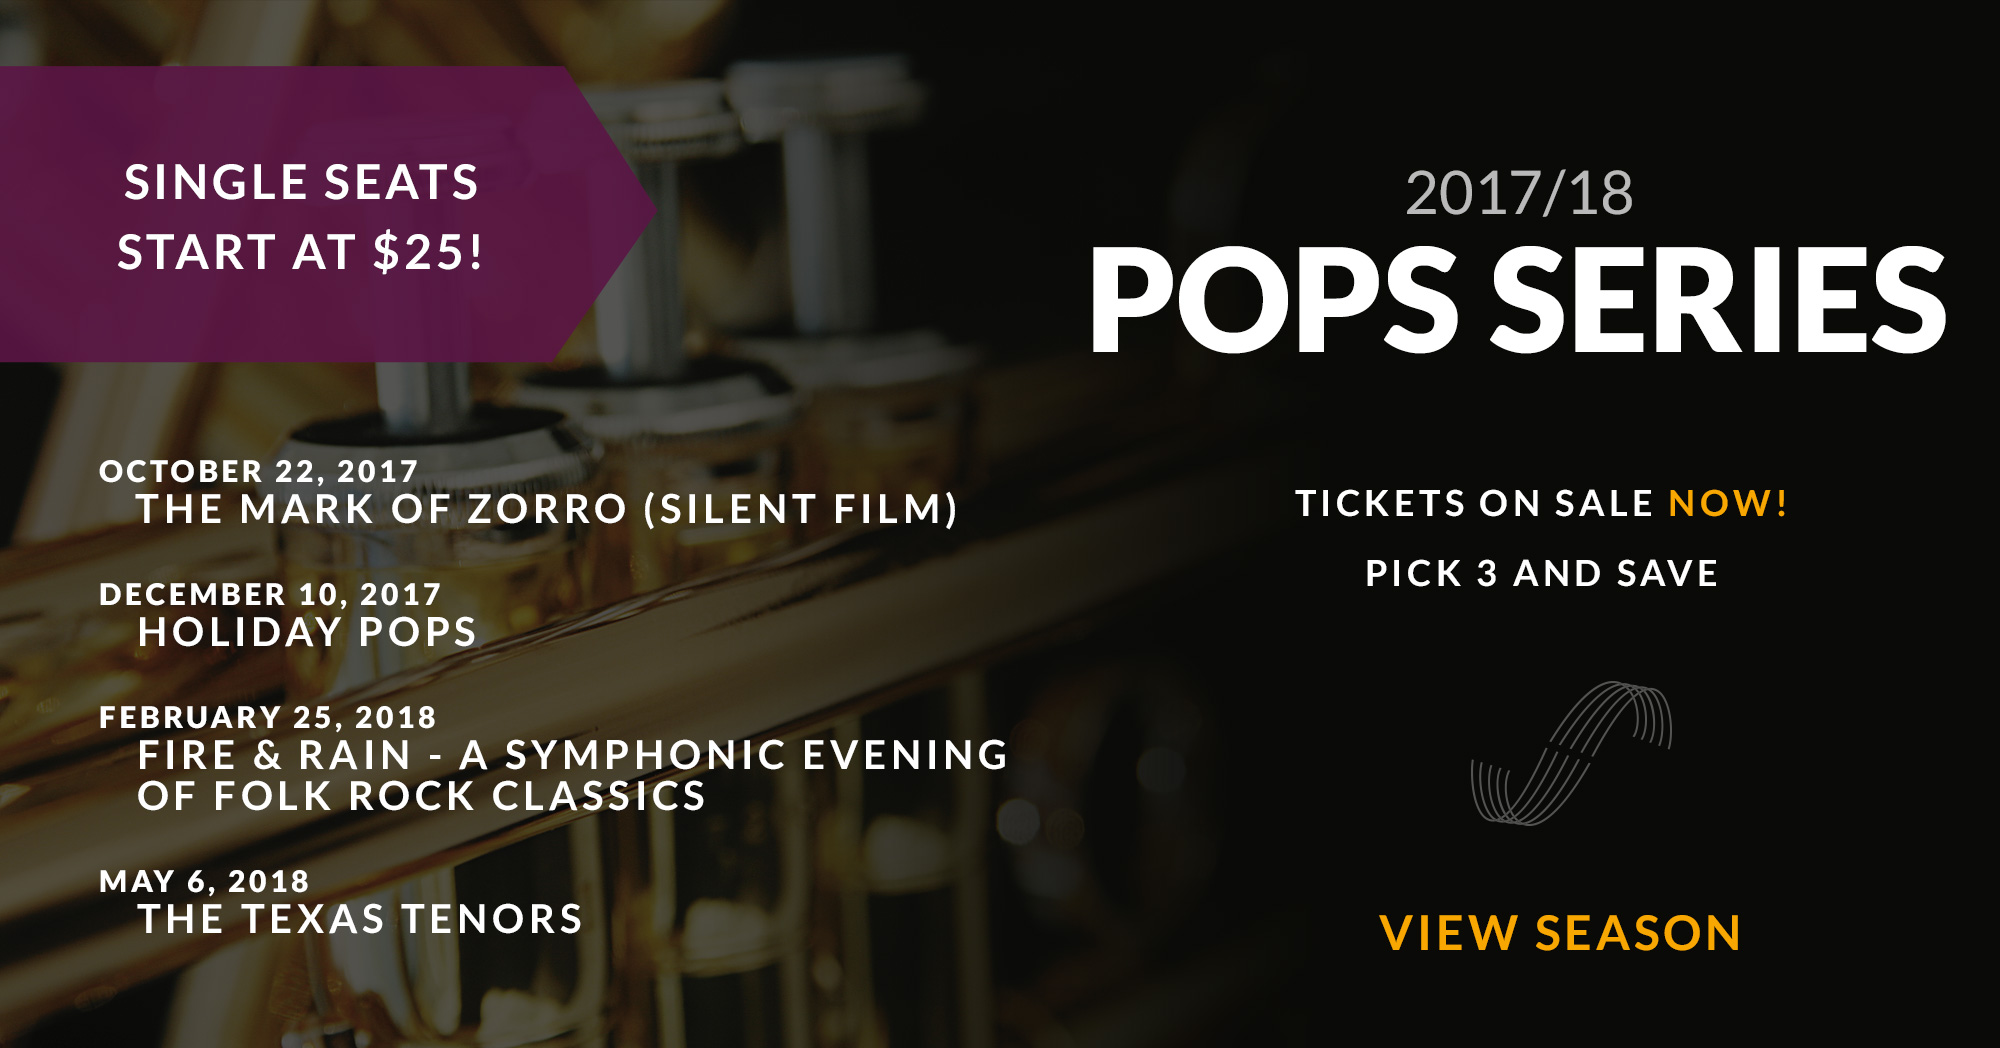 2017/18 Stockton Symphony POPS Series